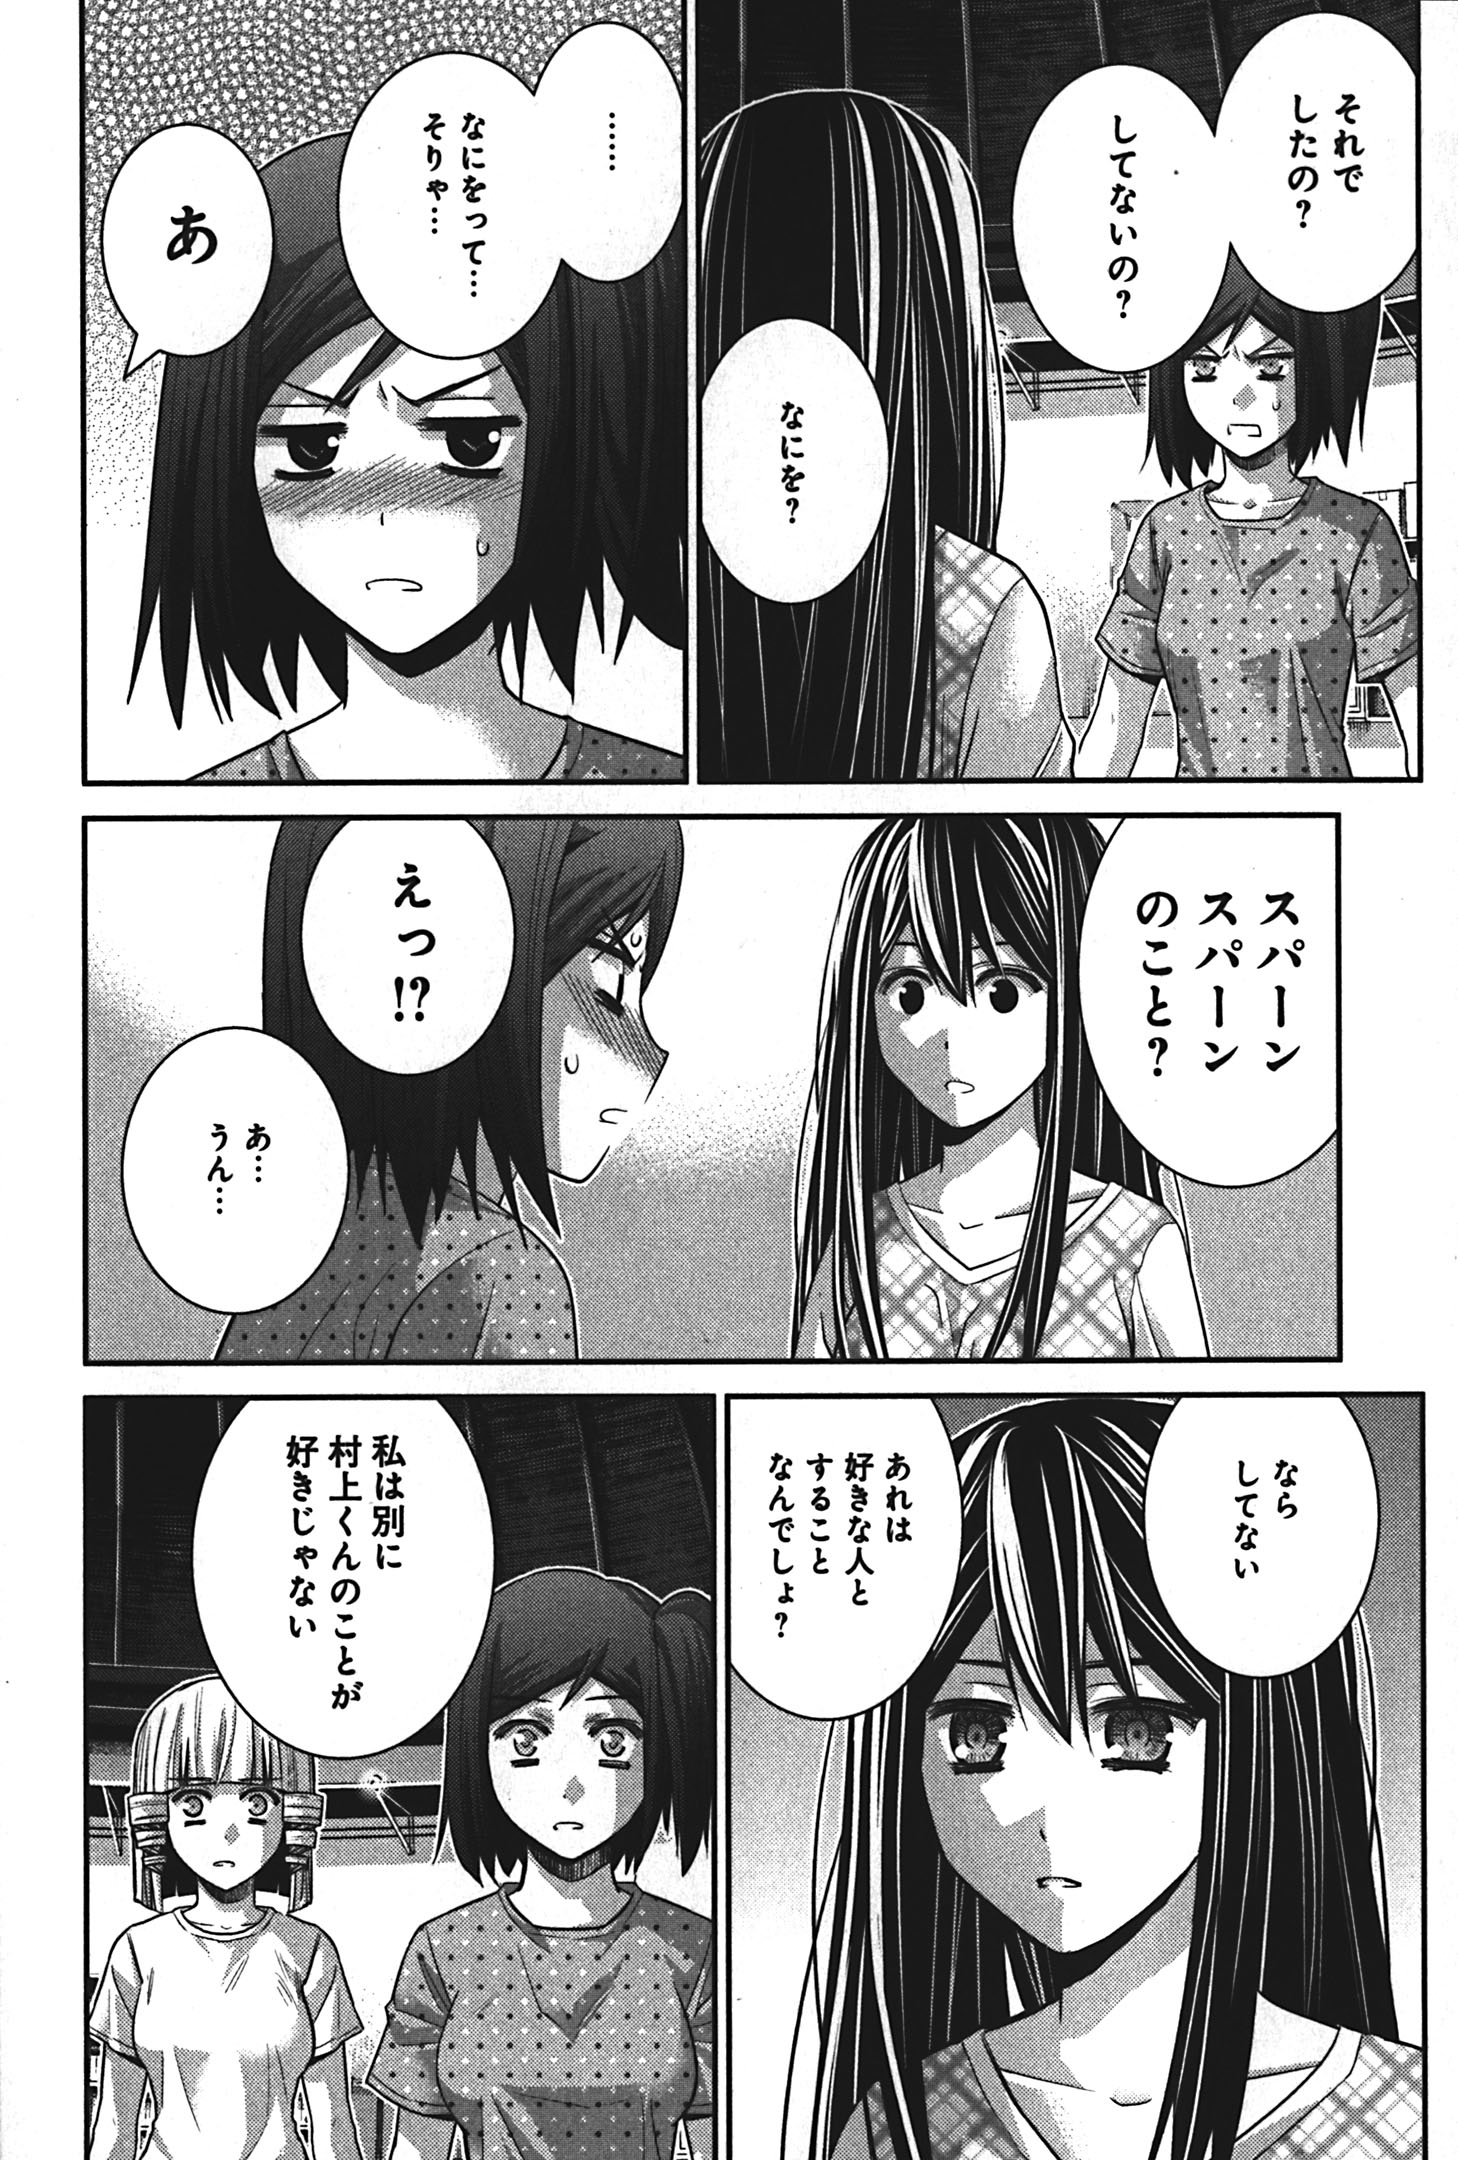 Manga Review: Brynhildr in the Darkness